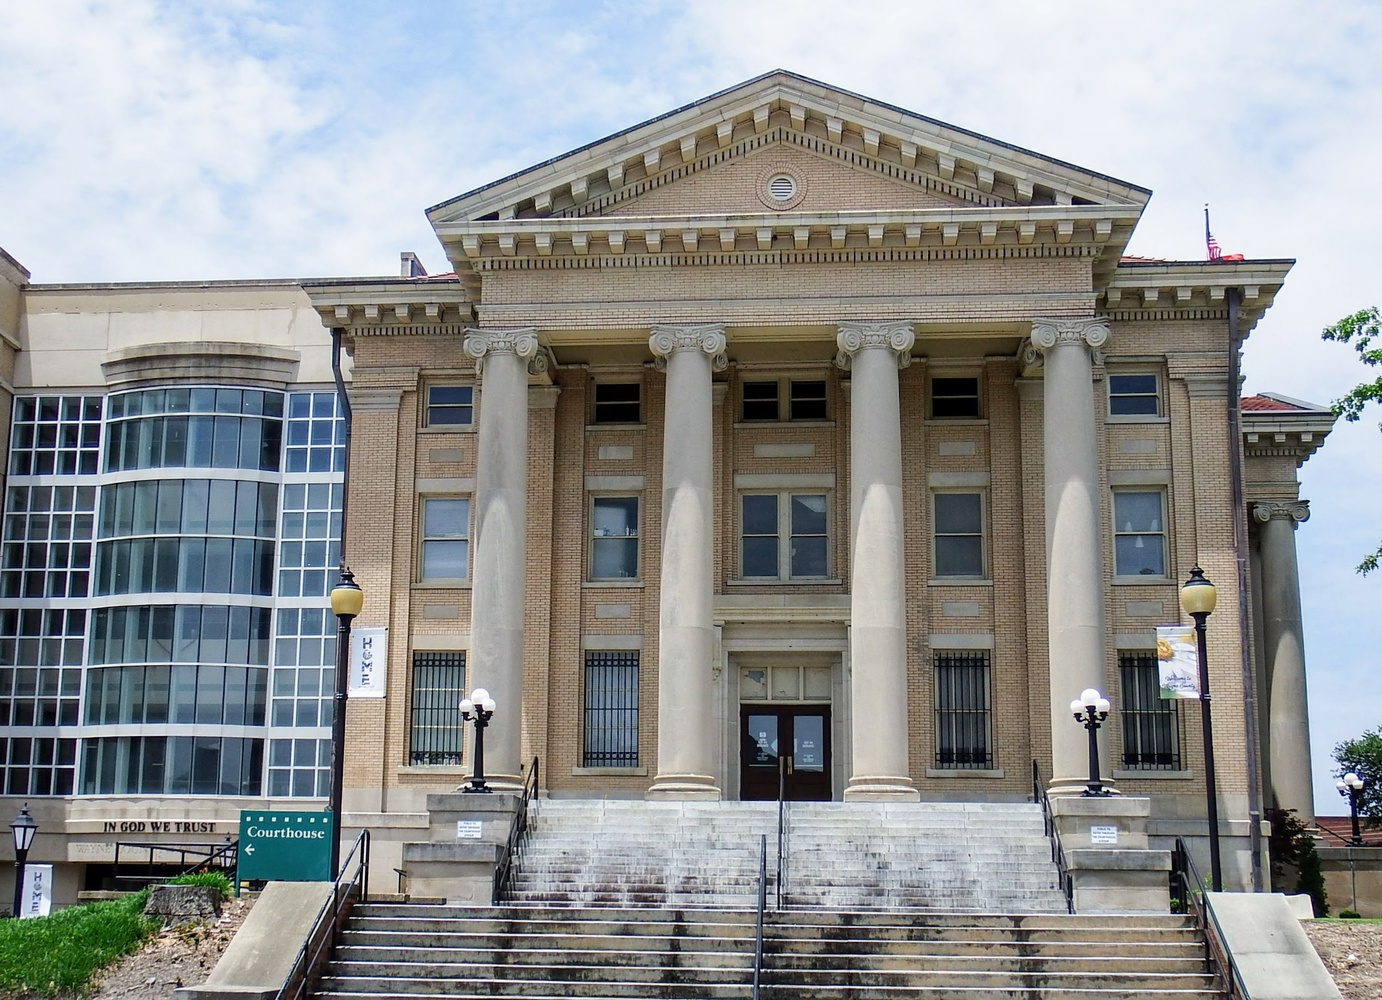 Wayne County Courthouse by Michael Lewis